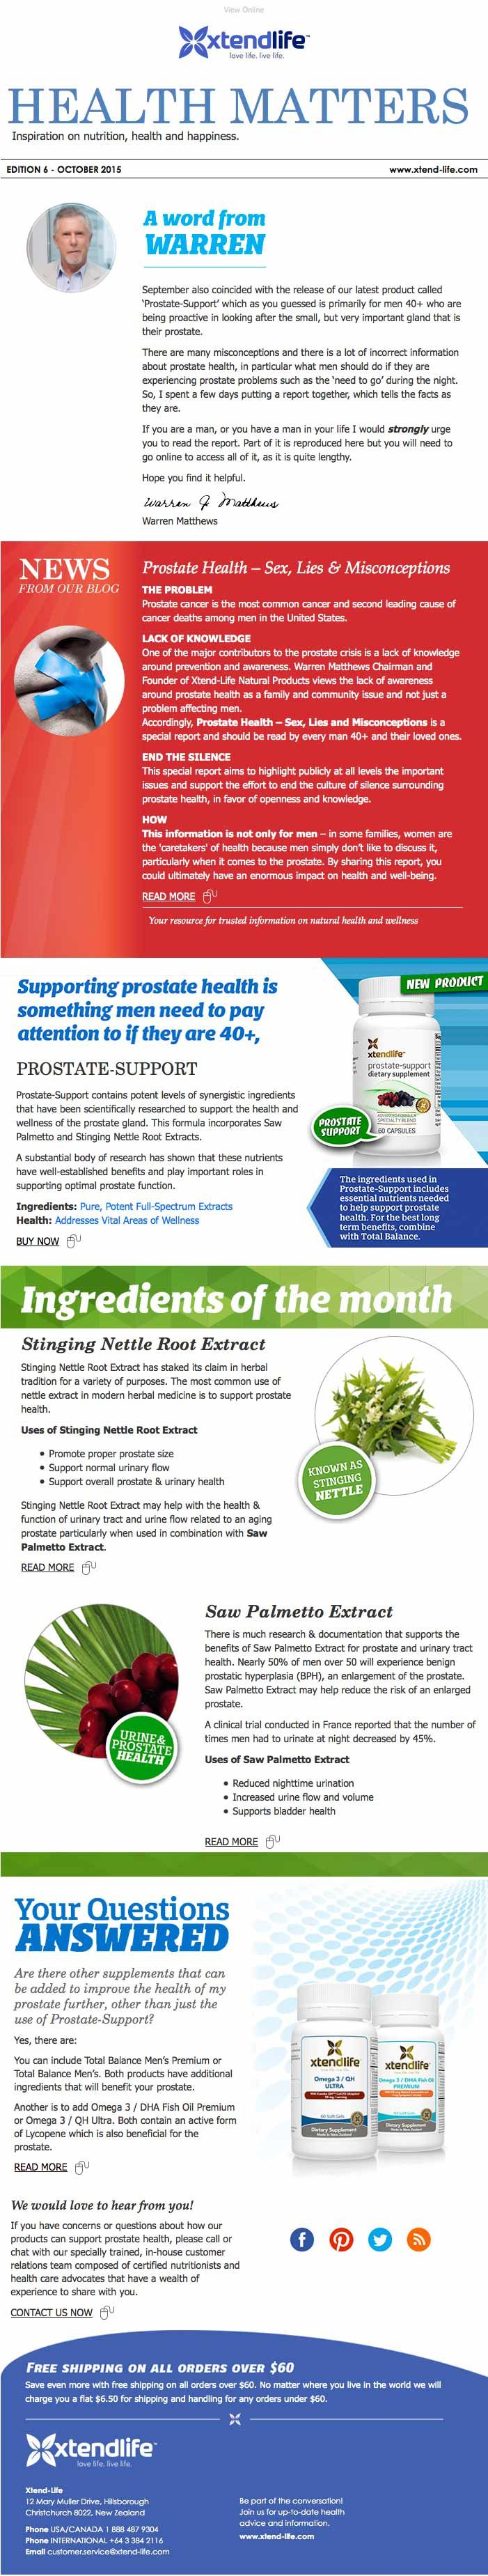 Health Matters |  A word from Warren  |  Prostate health - Sex, Lies & Misconceptions  |  Stinging Nettle Root Extract  |  Saw Palmetto Extract